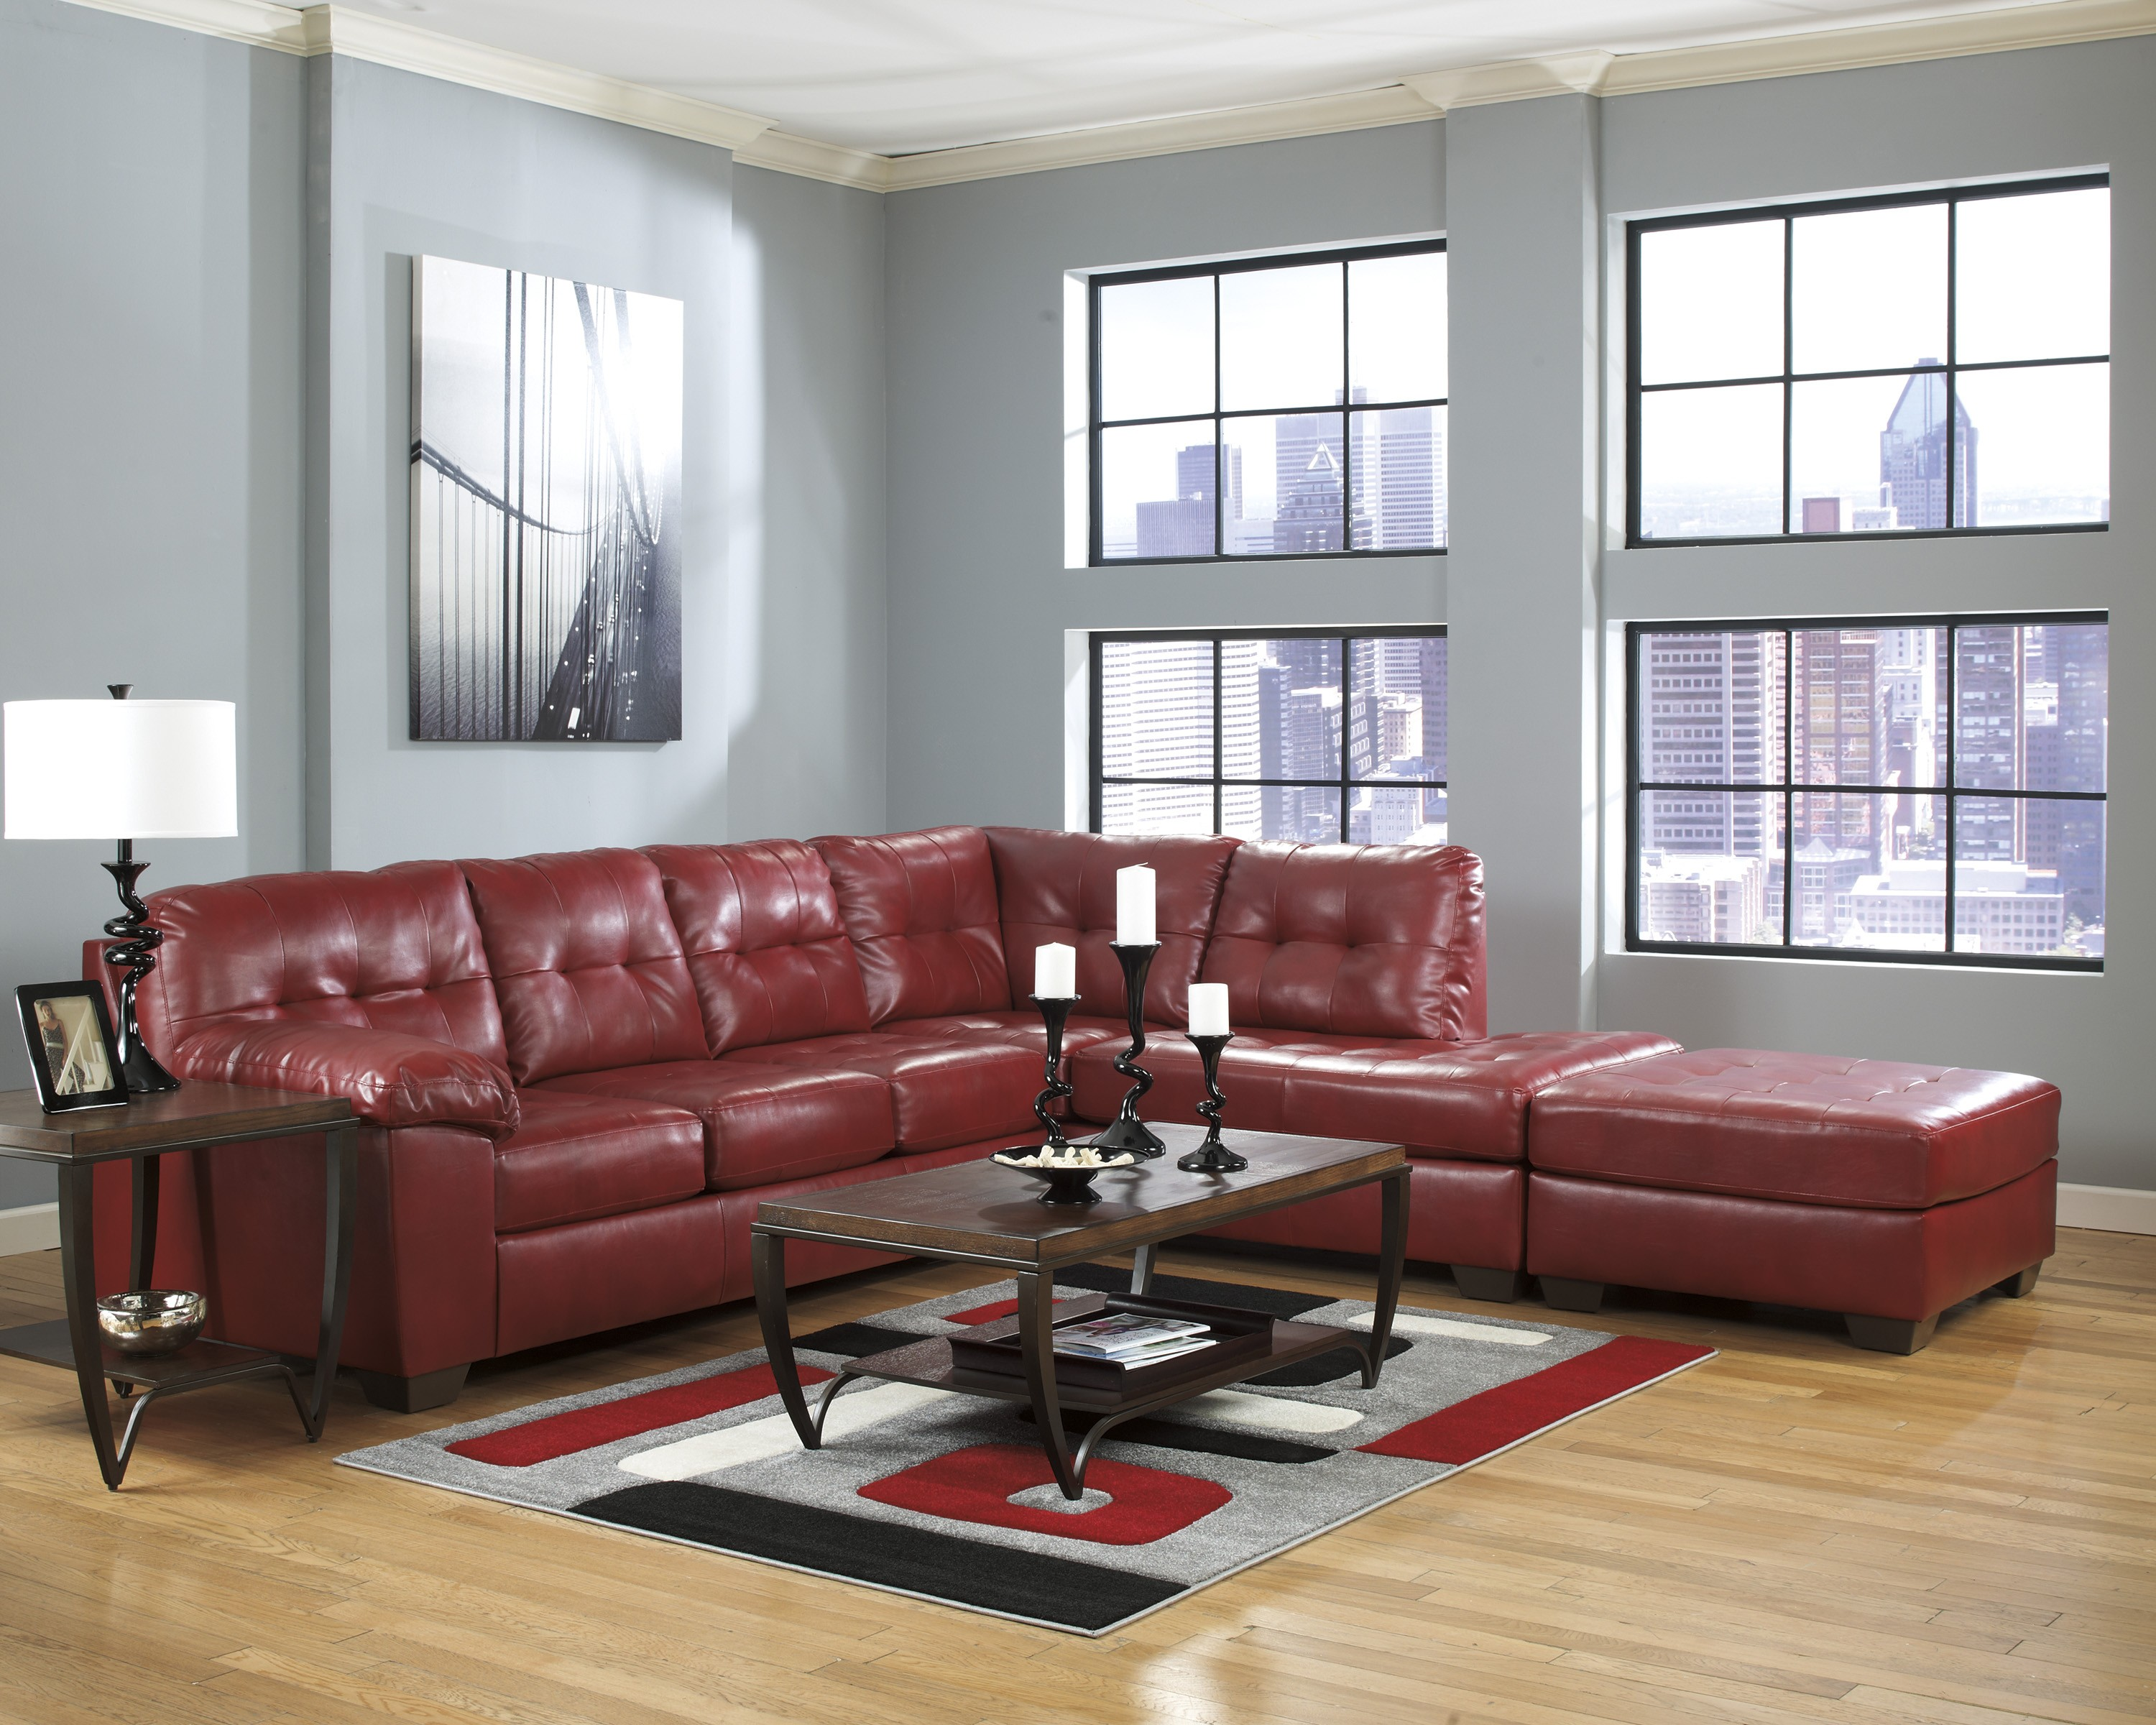 Alliston DuraBlend Salsa Right Arm Facing Sectional from Ashley